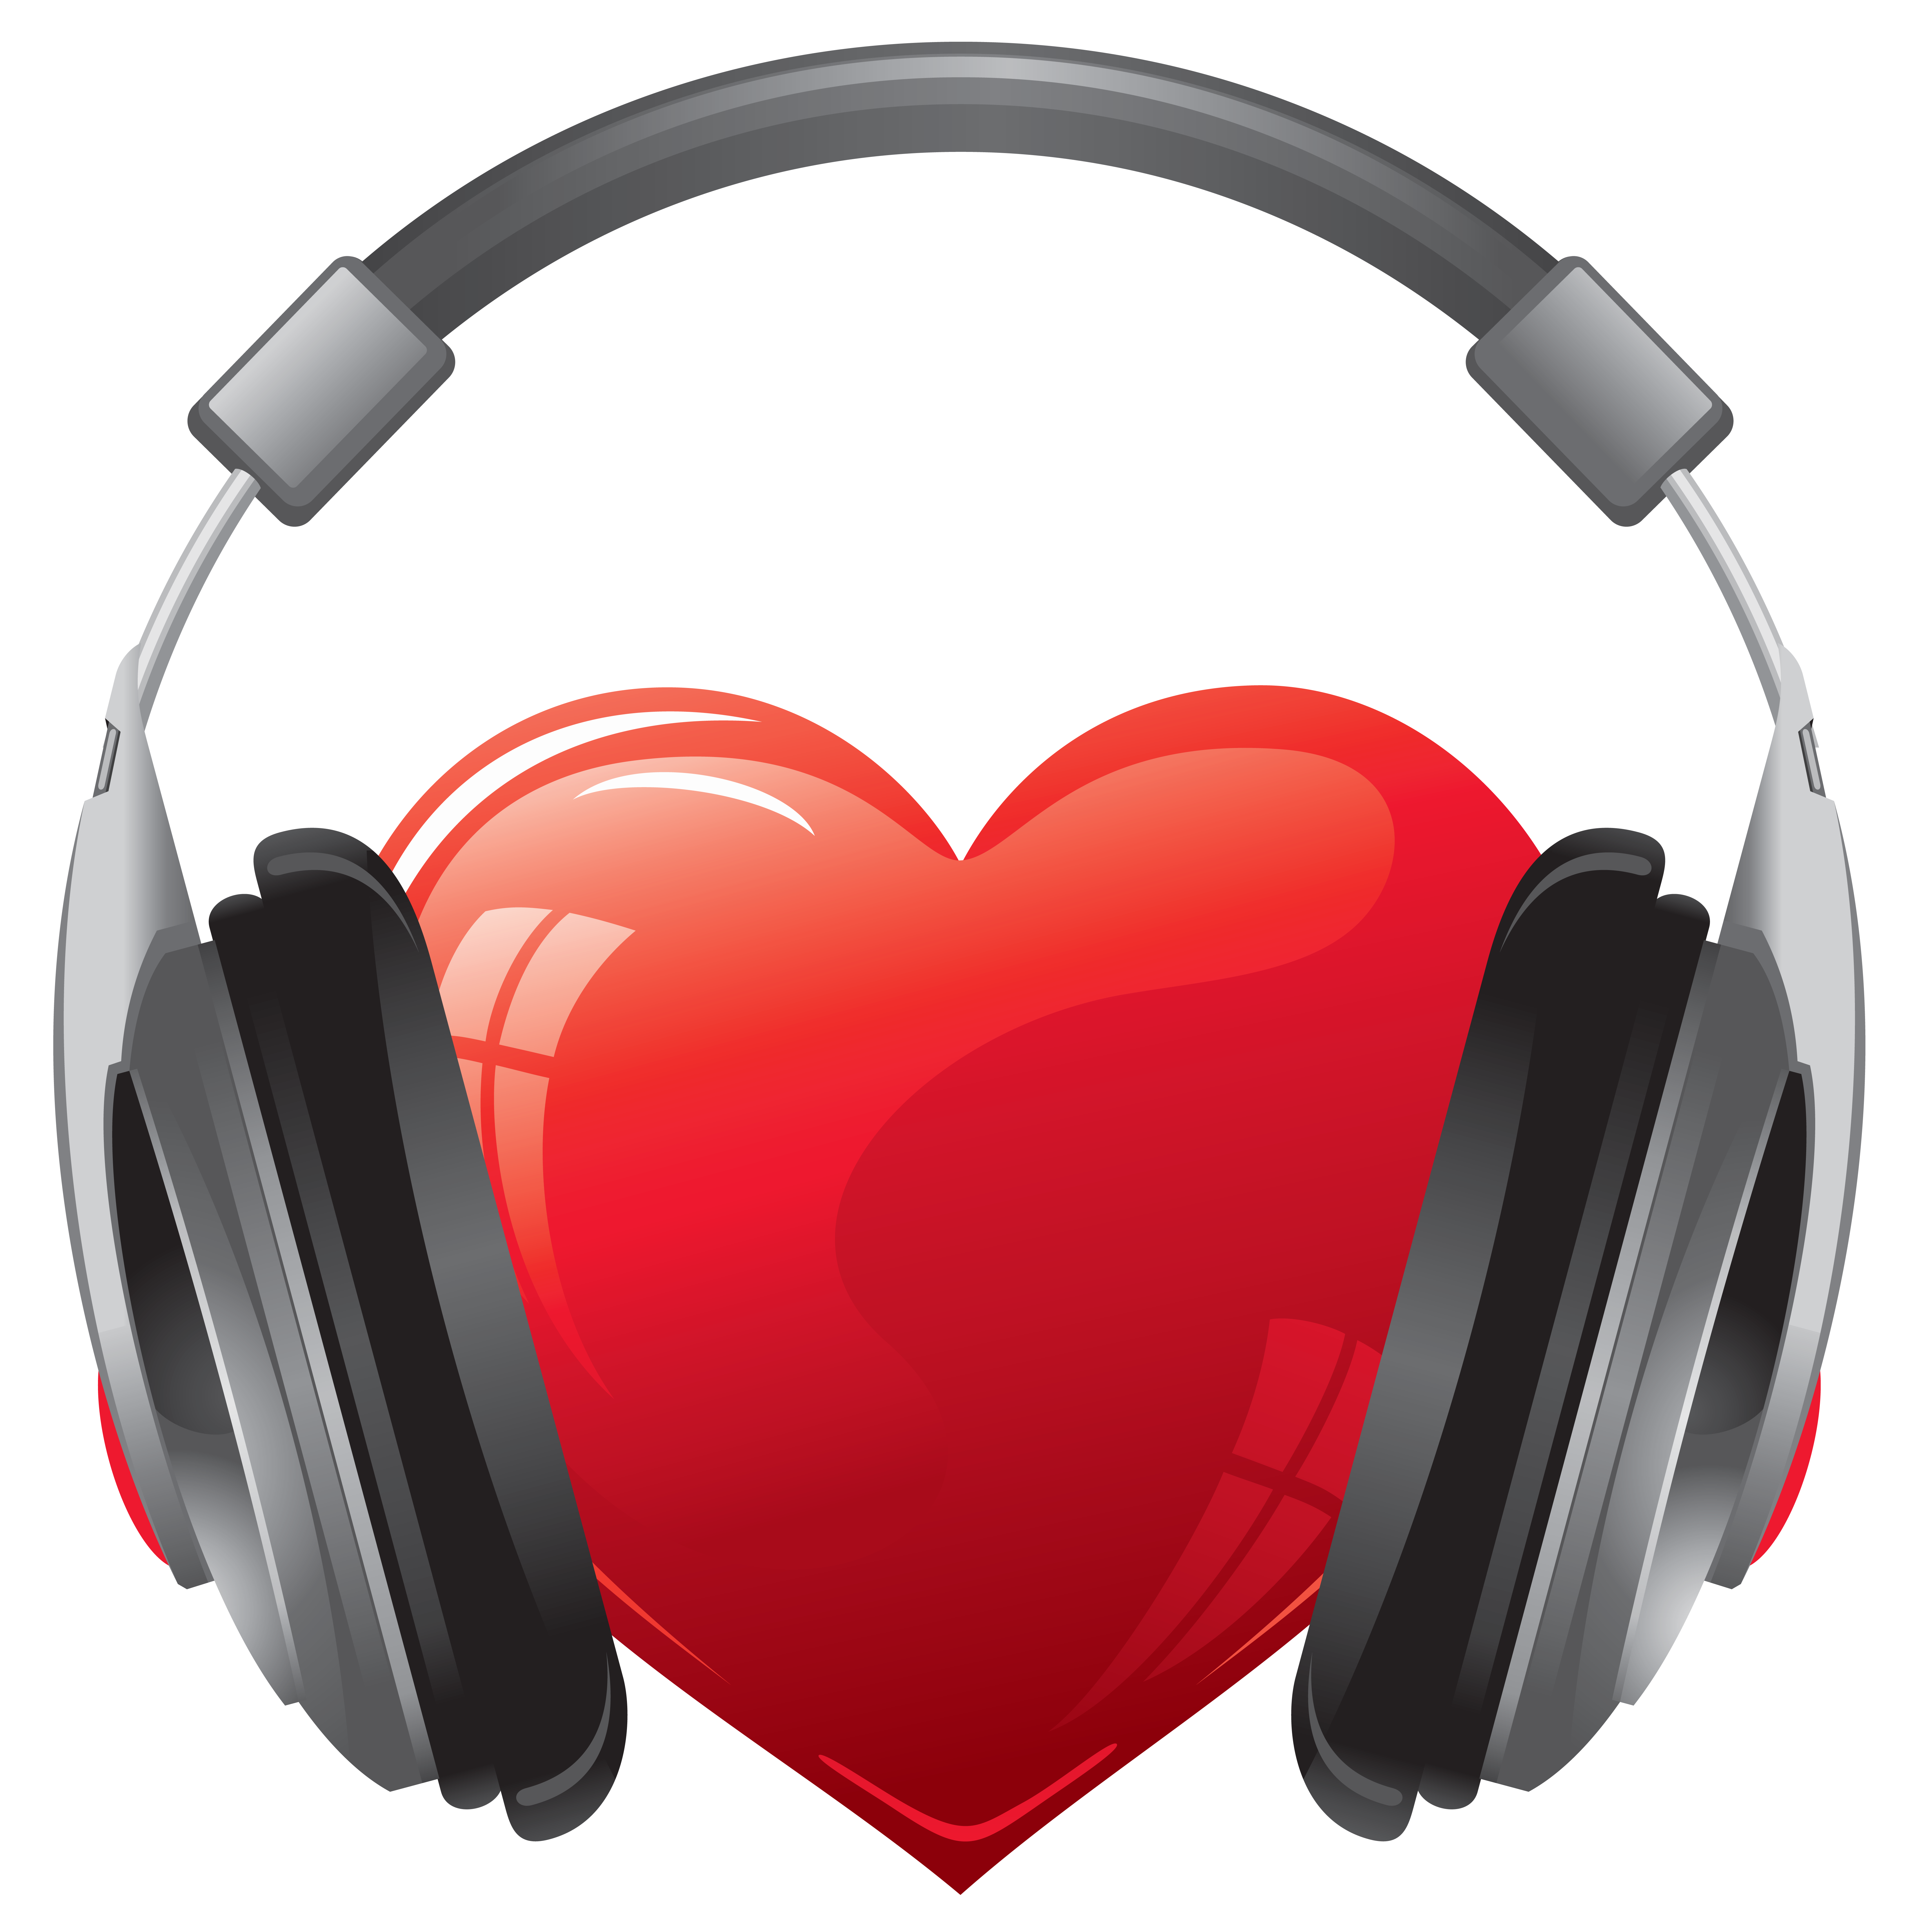 Headphones clipart png. Heart with image gallery